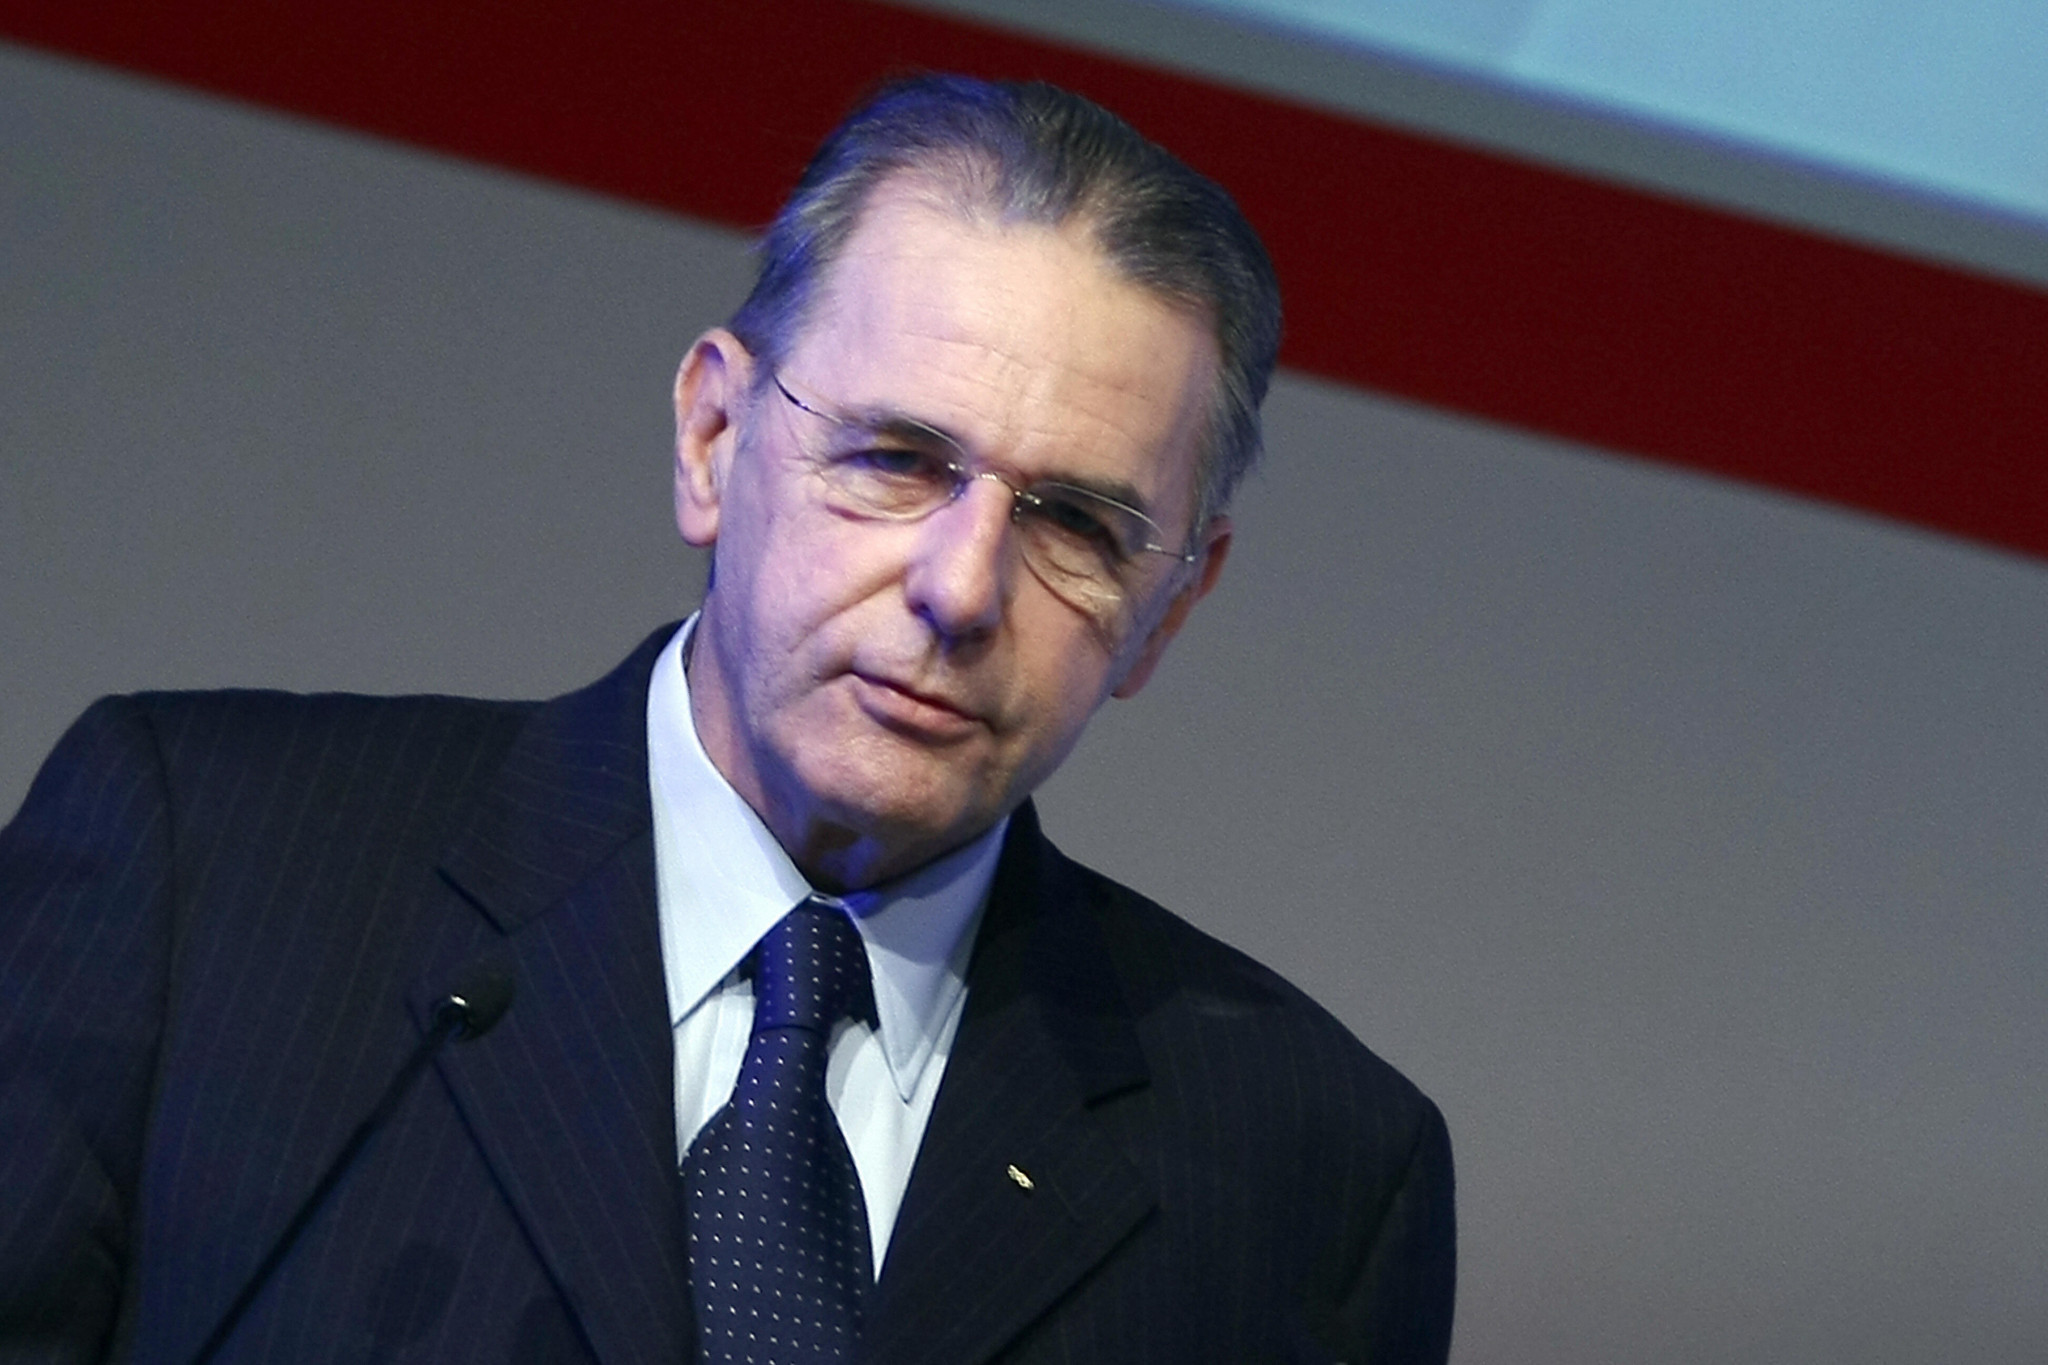 FISU pays tribute to former IOC President Jacques Rogge